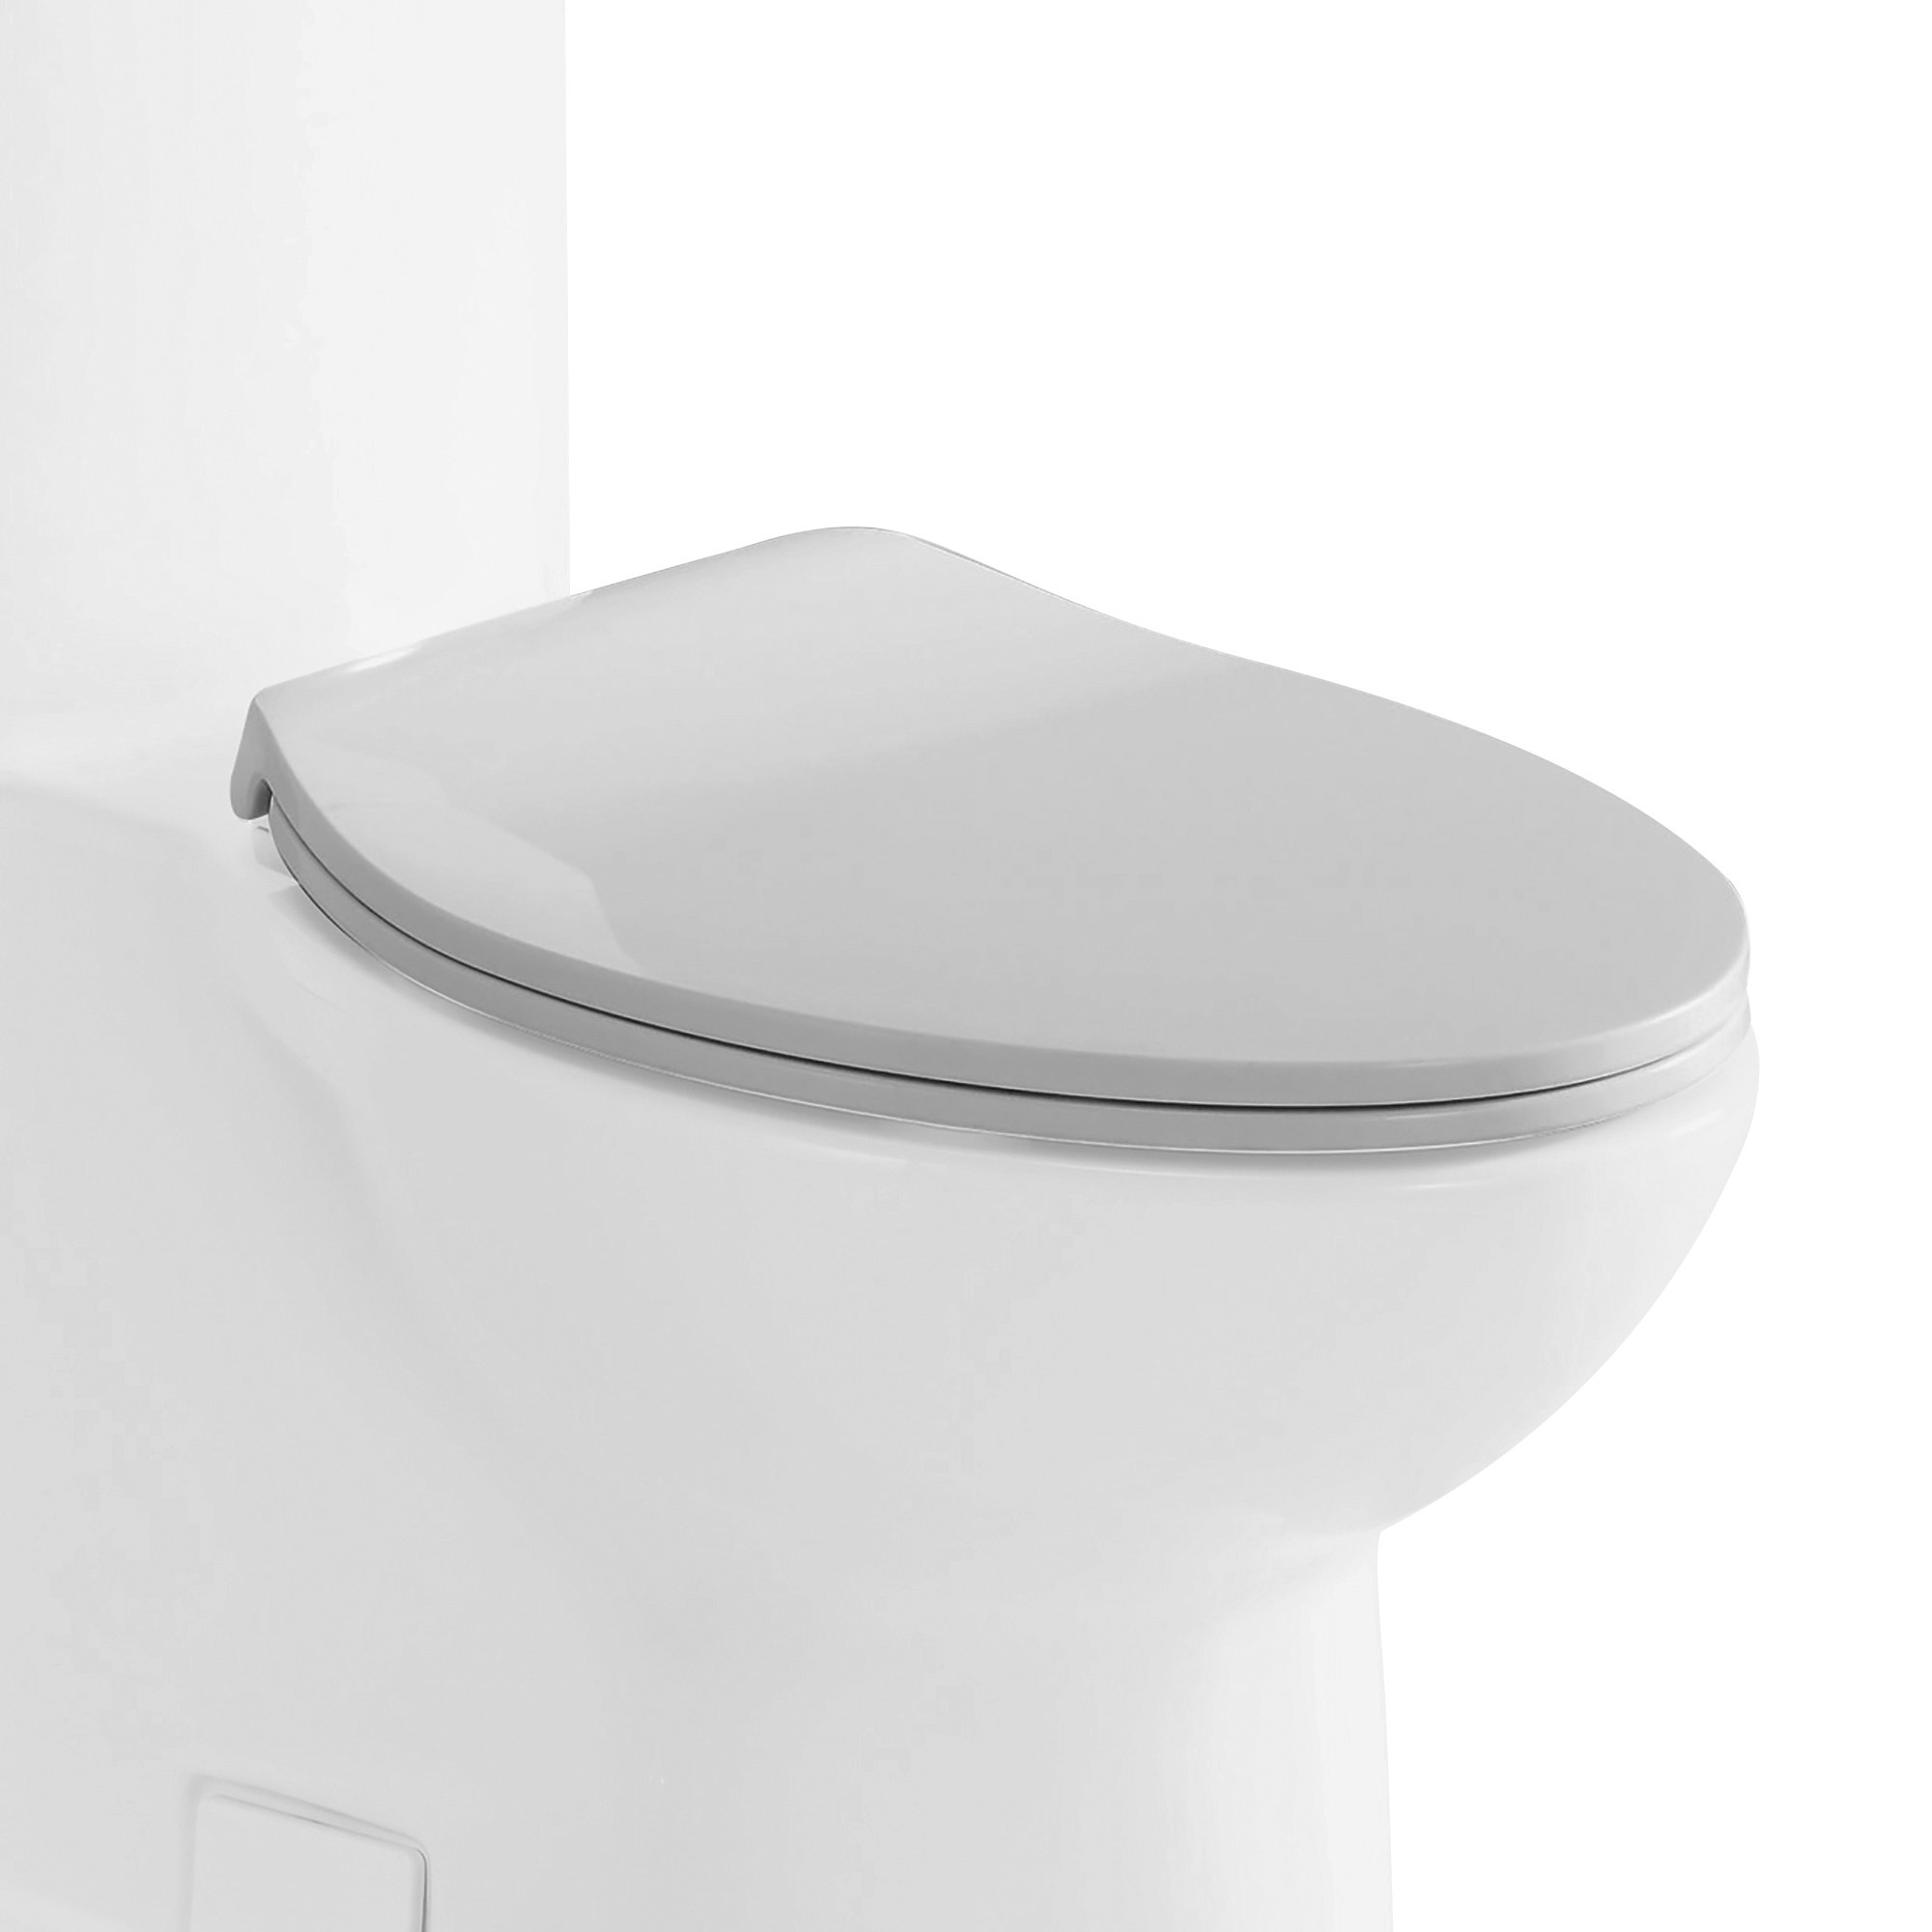 EAGO R-364SEAT Replacement Soft Closing Toilet Seat for TB364